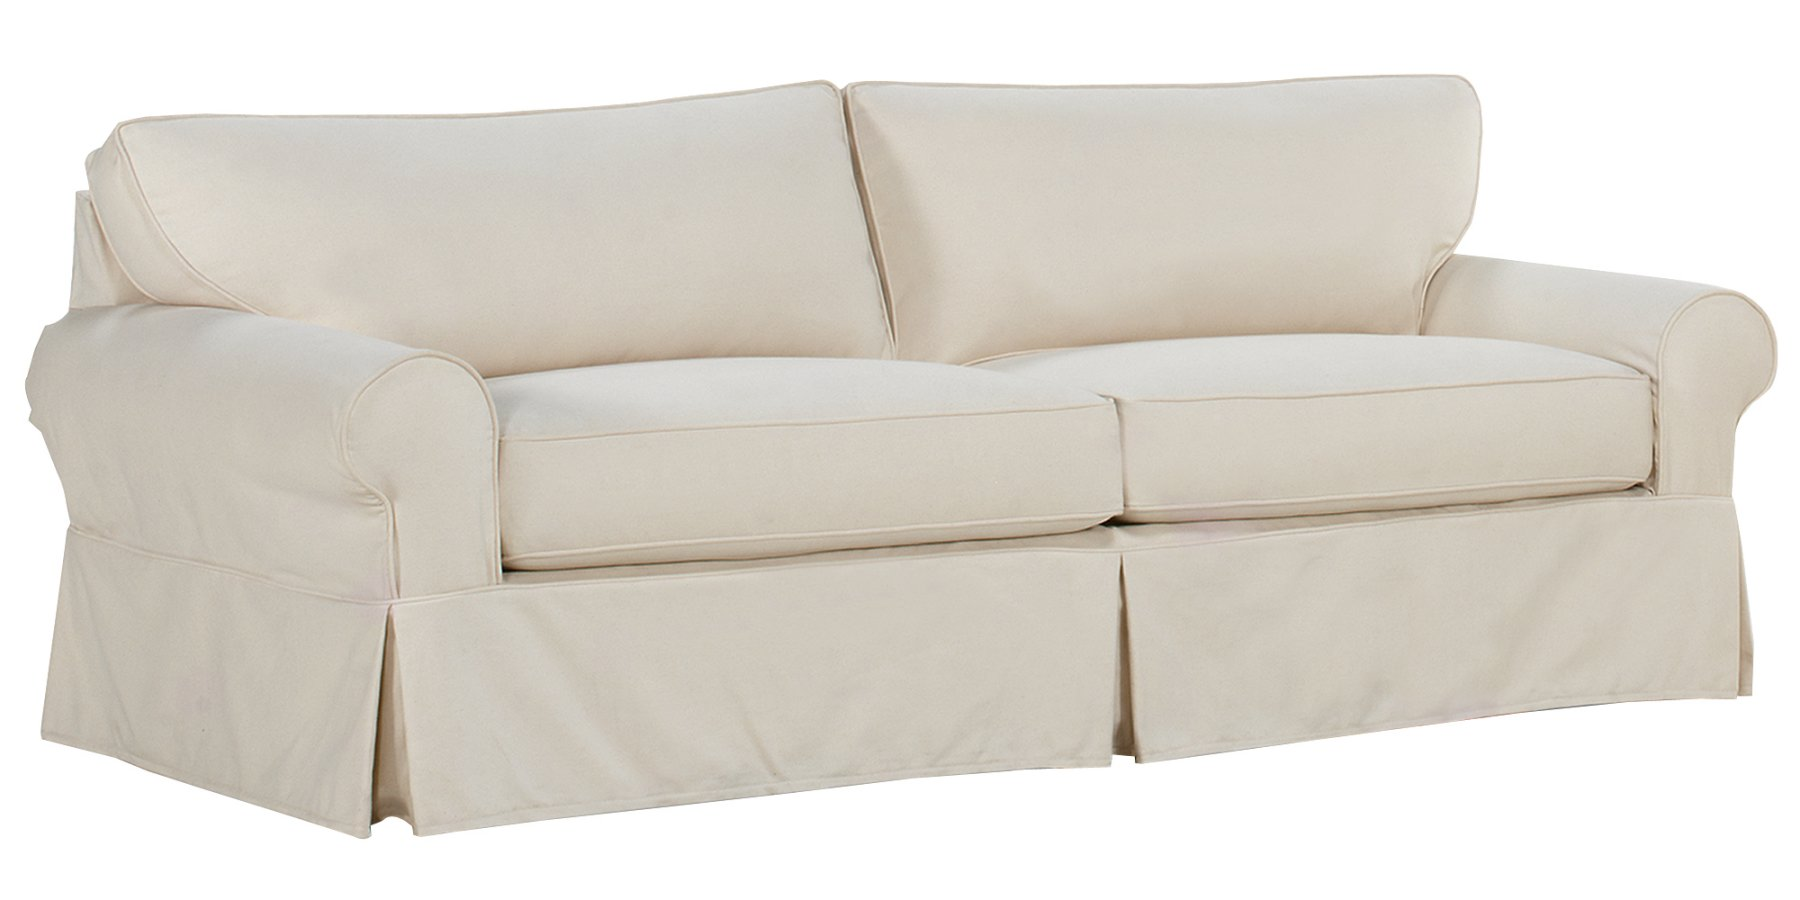 Oversized sofas and sofa slipcover furniture online for Furniture covers